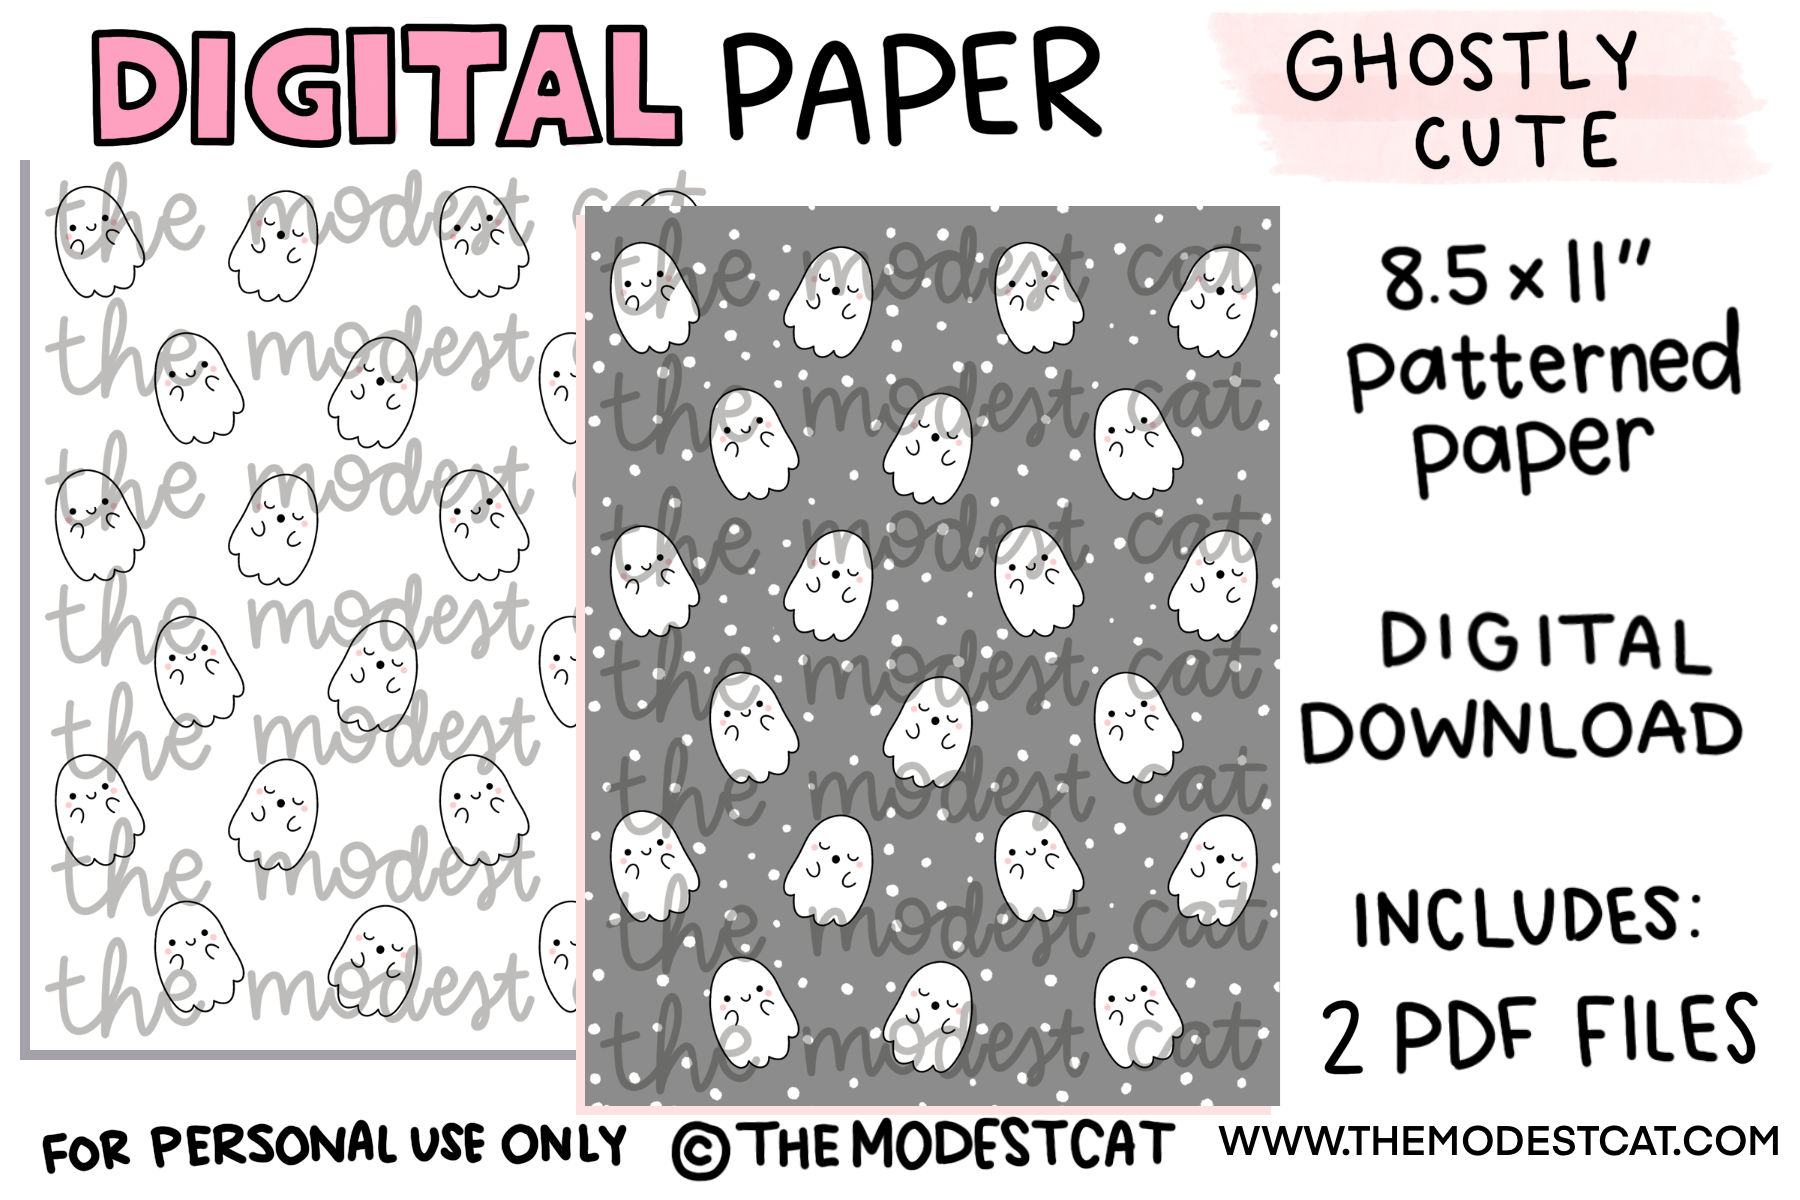 Ghostly Cute Digital Paper - Instant Digital Download